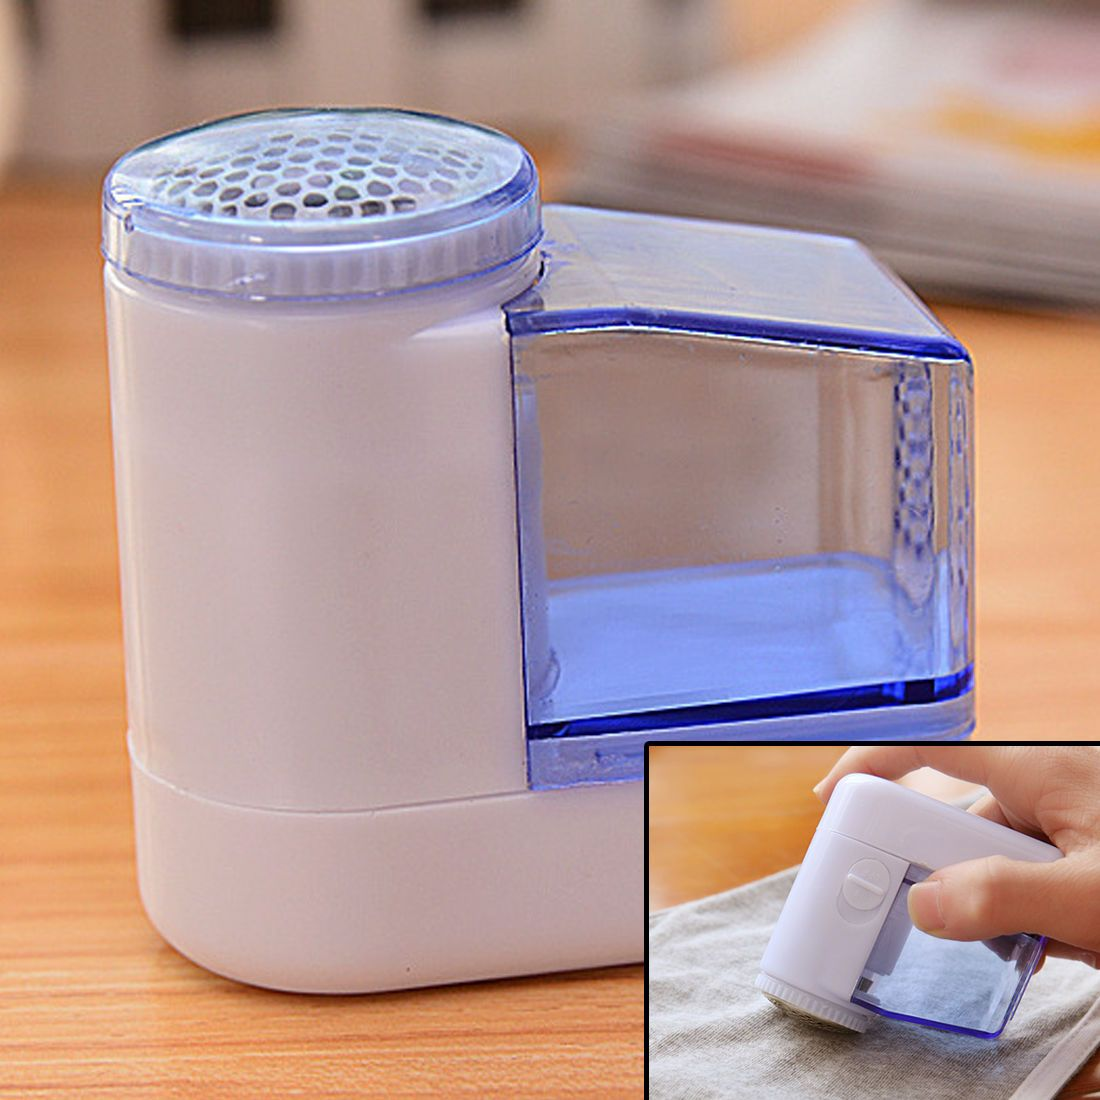 2 32 1pc Electric Fuzz Cloth Pill Lint Remover Wool Sweater Fabric Shaver Trimmer Ebay Home Garden Shaving Machine Lint Remover Fabric Shaver